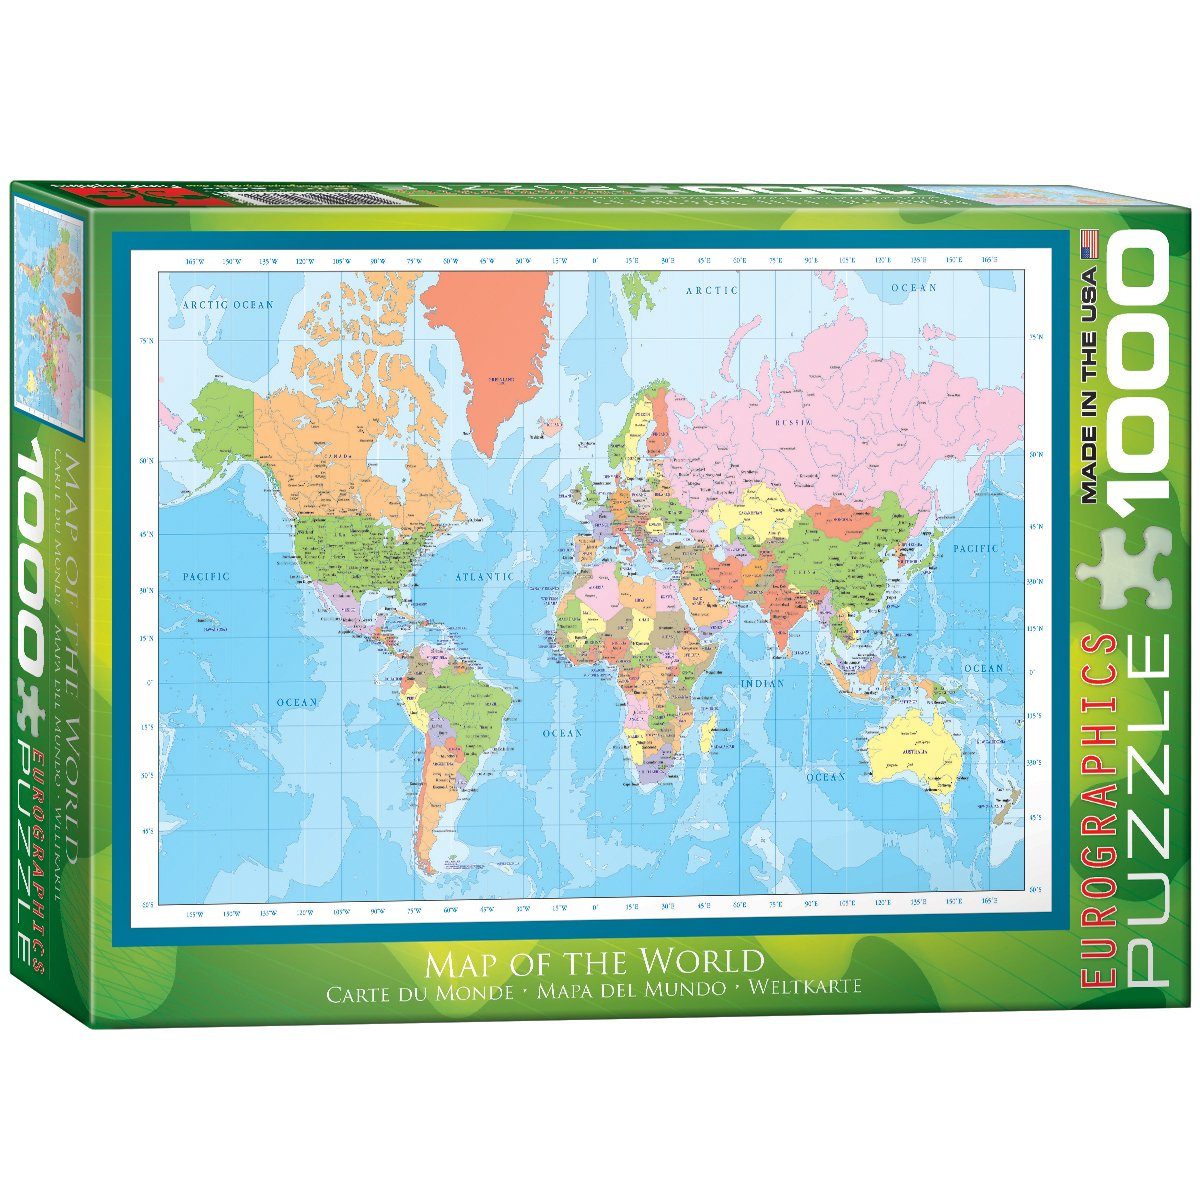 Eurographics modern map of the world 1000 piece puzzle jigsaw eurographics modern map of the world 1000 piece puzzle jigsaw puzzles amazon canada gumiabroncs Image collections